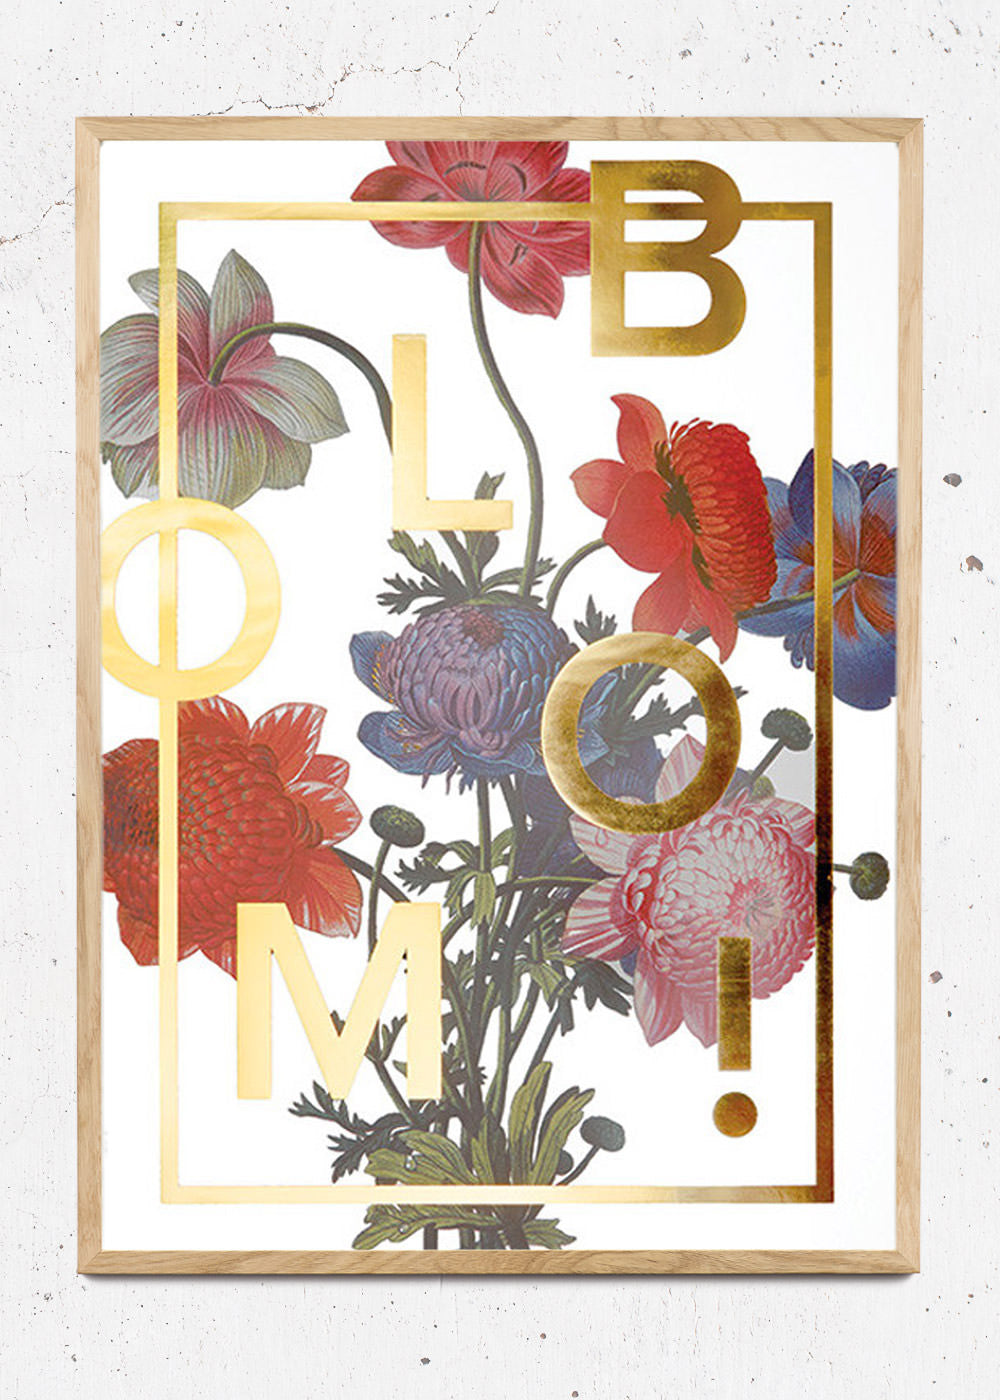 Plakat af Bloom! Gold fra I Love My Type